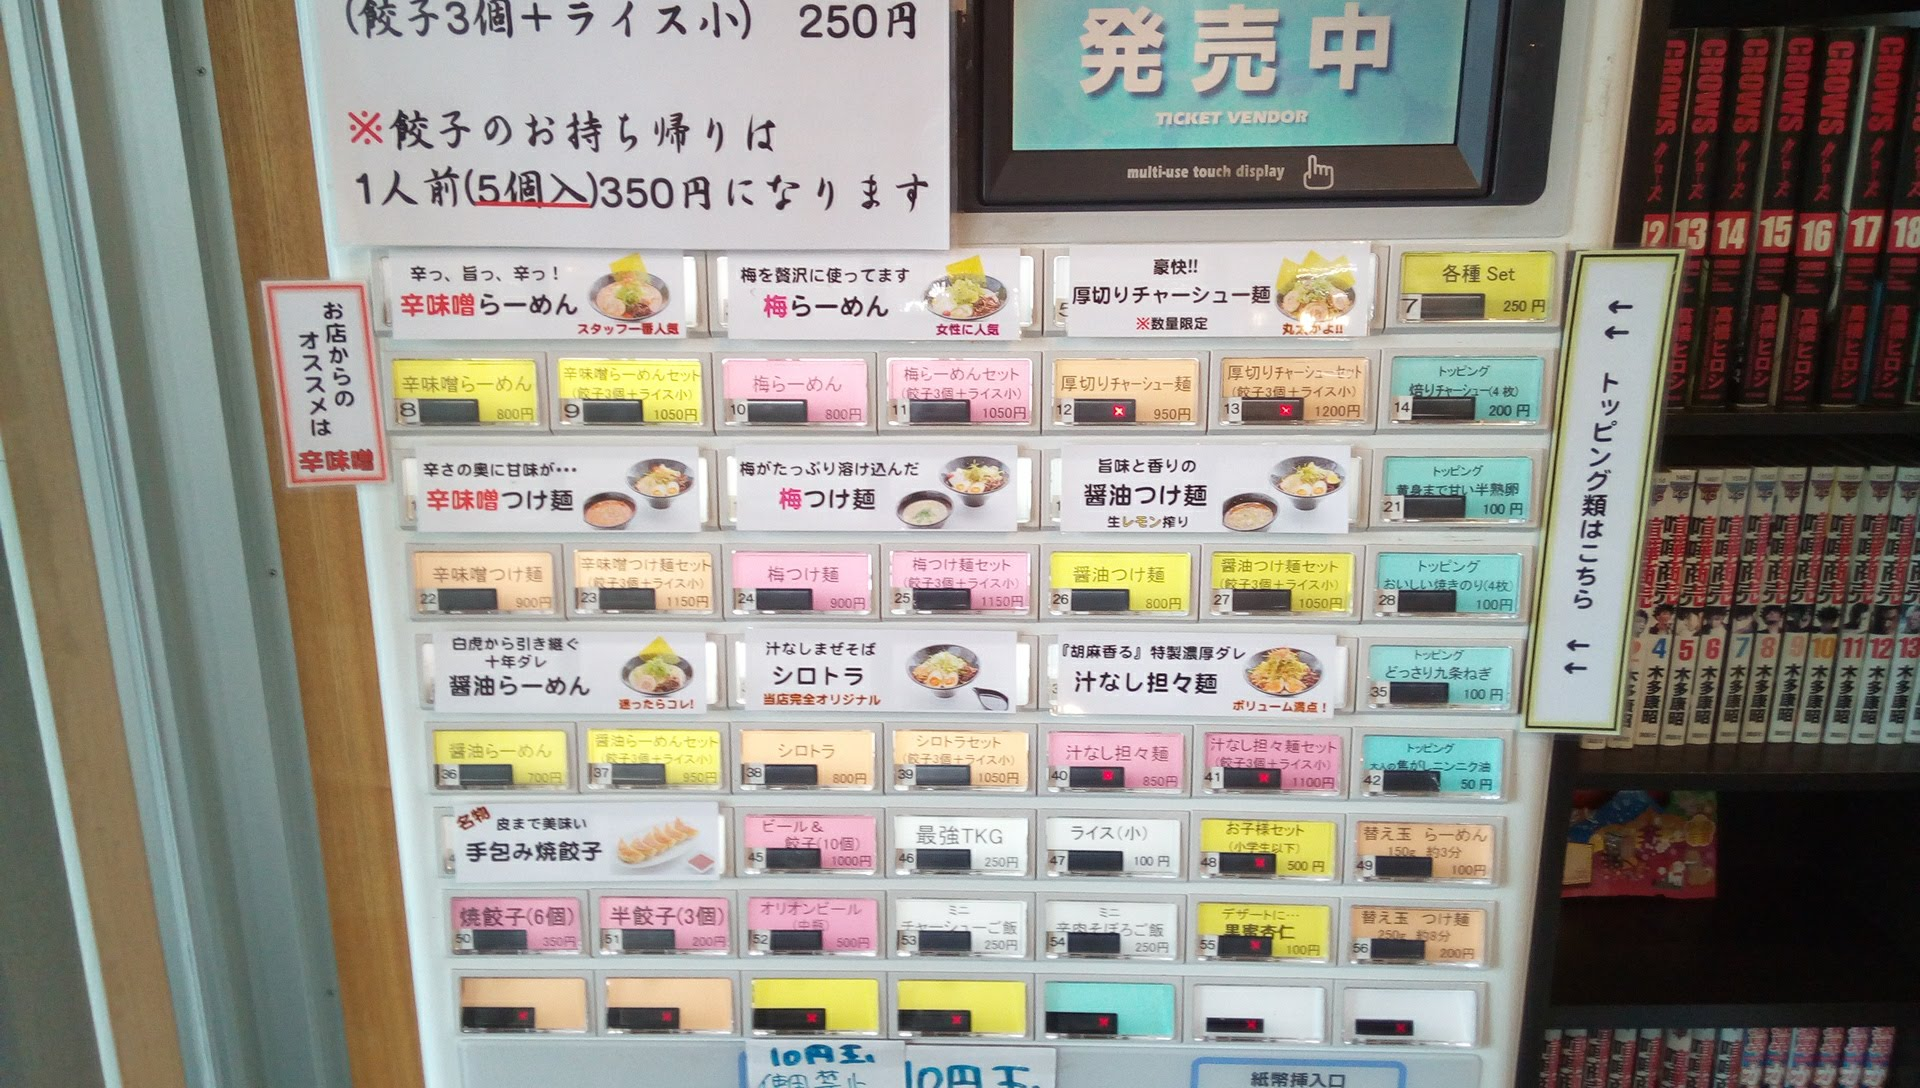 Food ticket vending machine